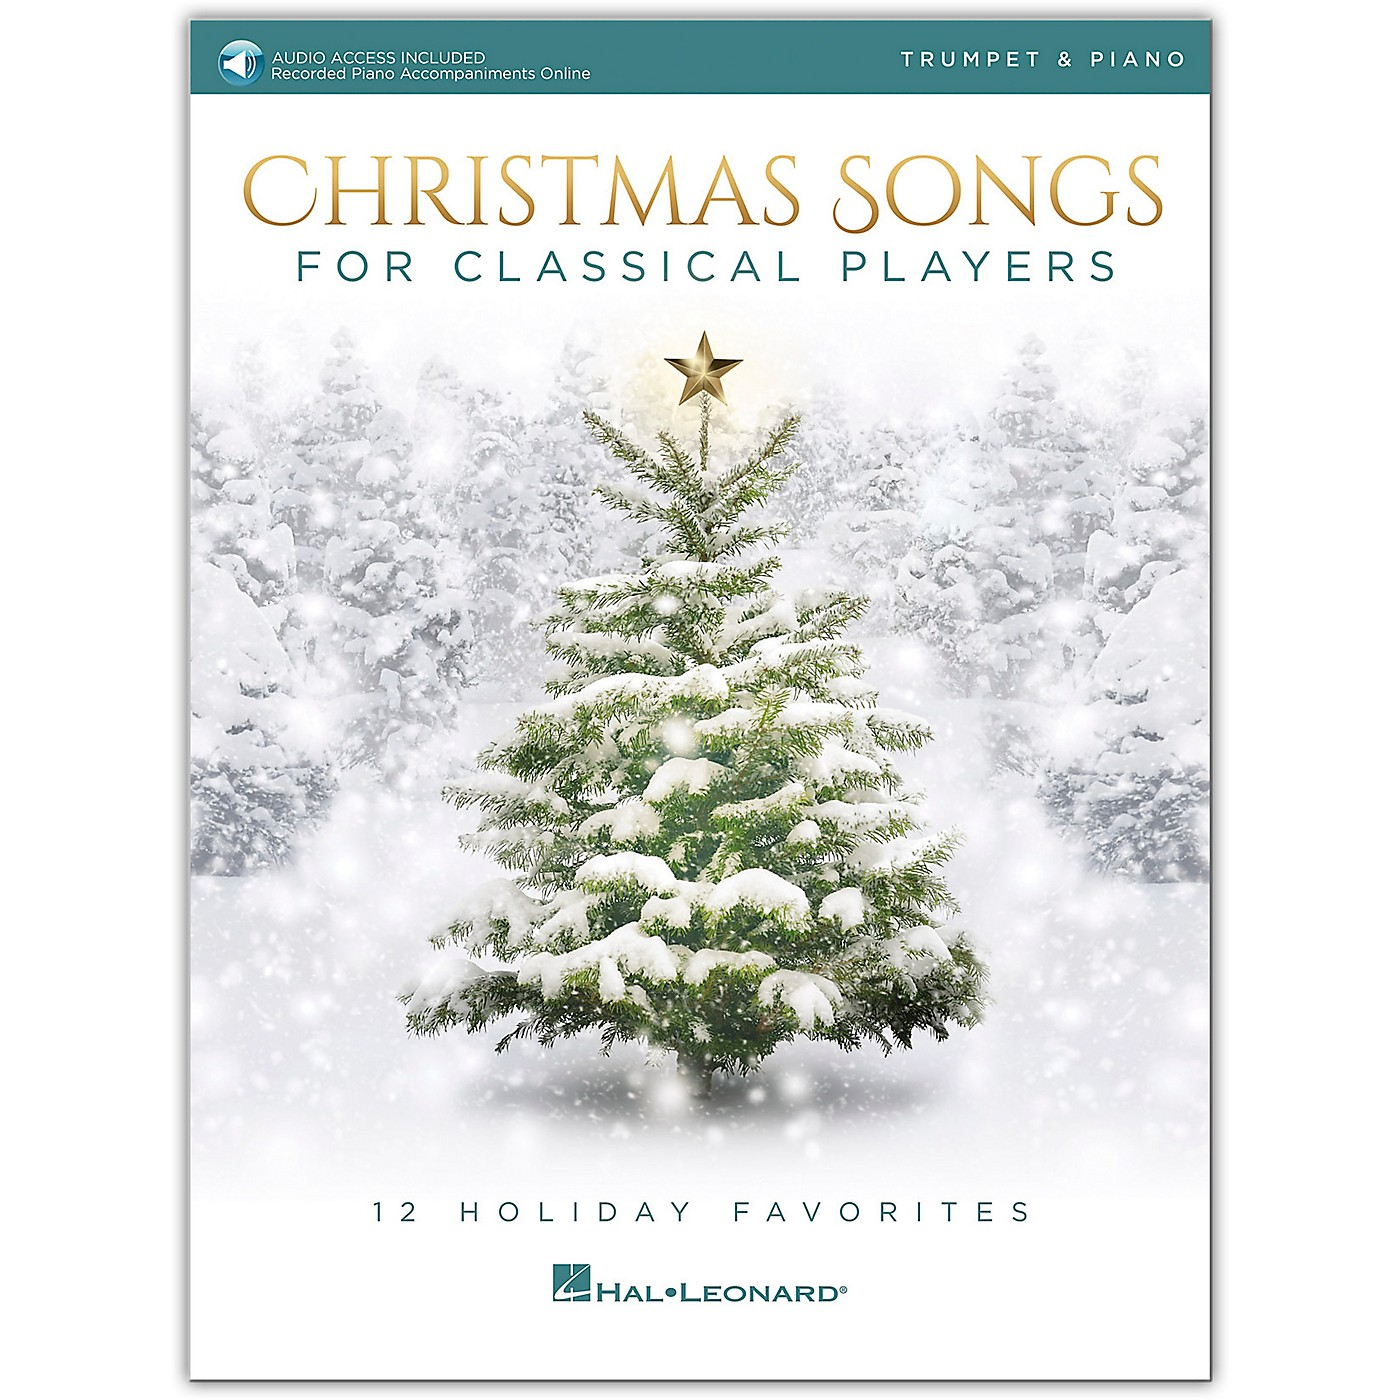 Hal Leonard Christmas Songs For Classical Players - Trumpet & Piano Book with Online Audio of Piano Accompaniments thumbnail